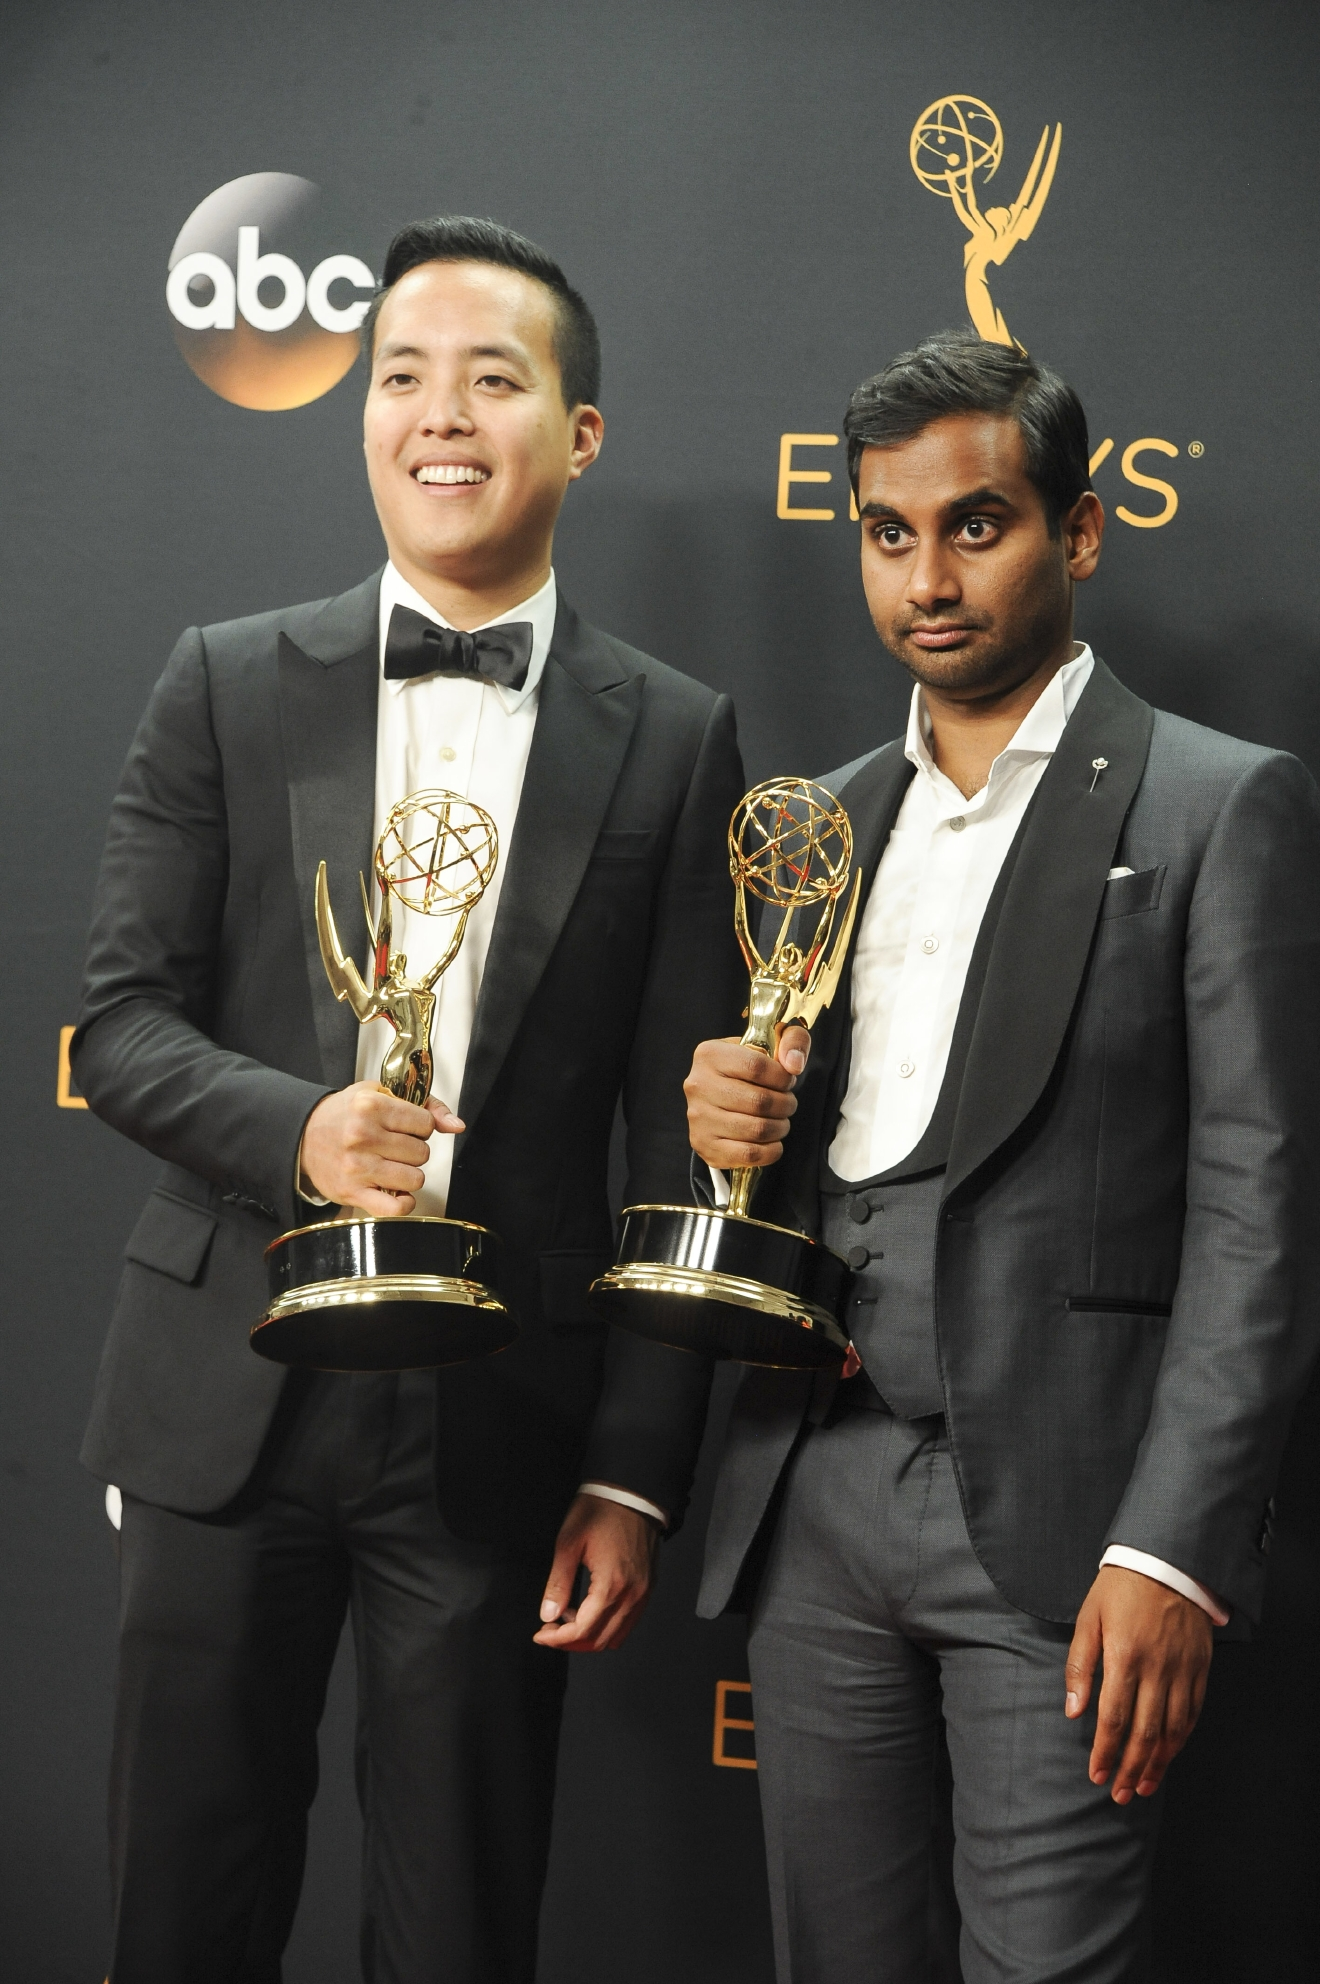 68th Emmy Awards held at the Microsoft Theater - Press Room  Featuring: Alan Yang, Aziz Ansari Where: Los Angeles, California, United States When: 18 Sep 2016 Credit: Apega/WENN.com